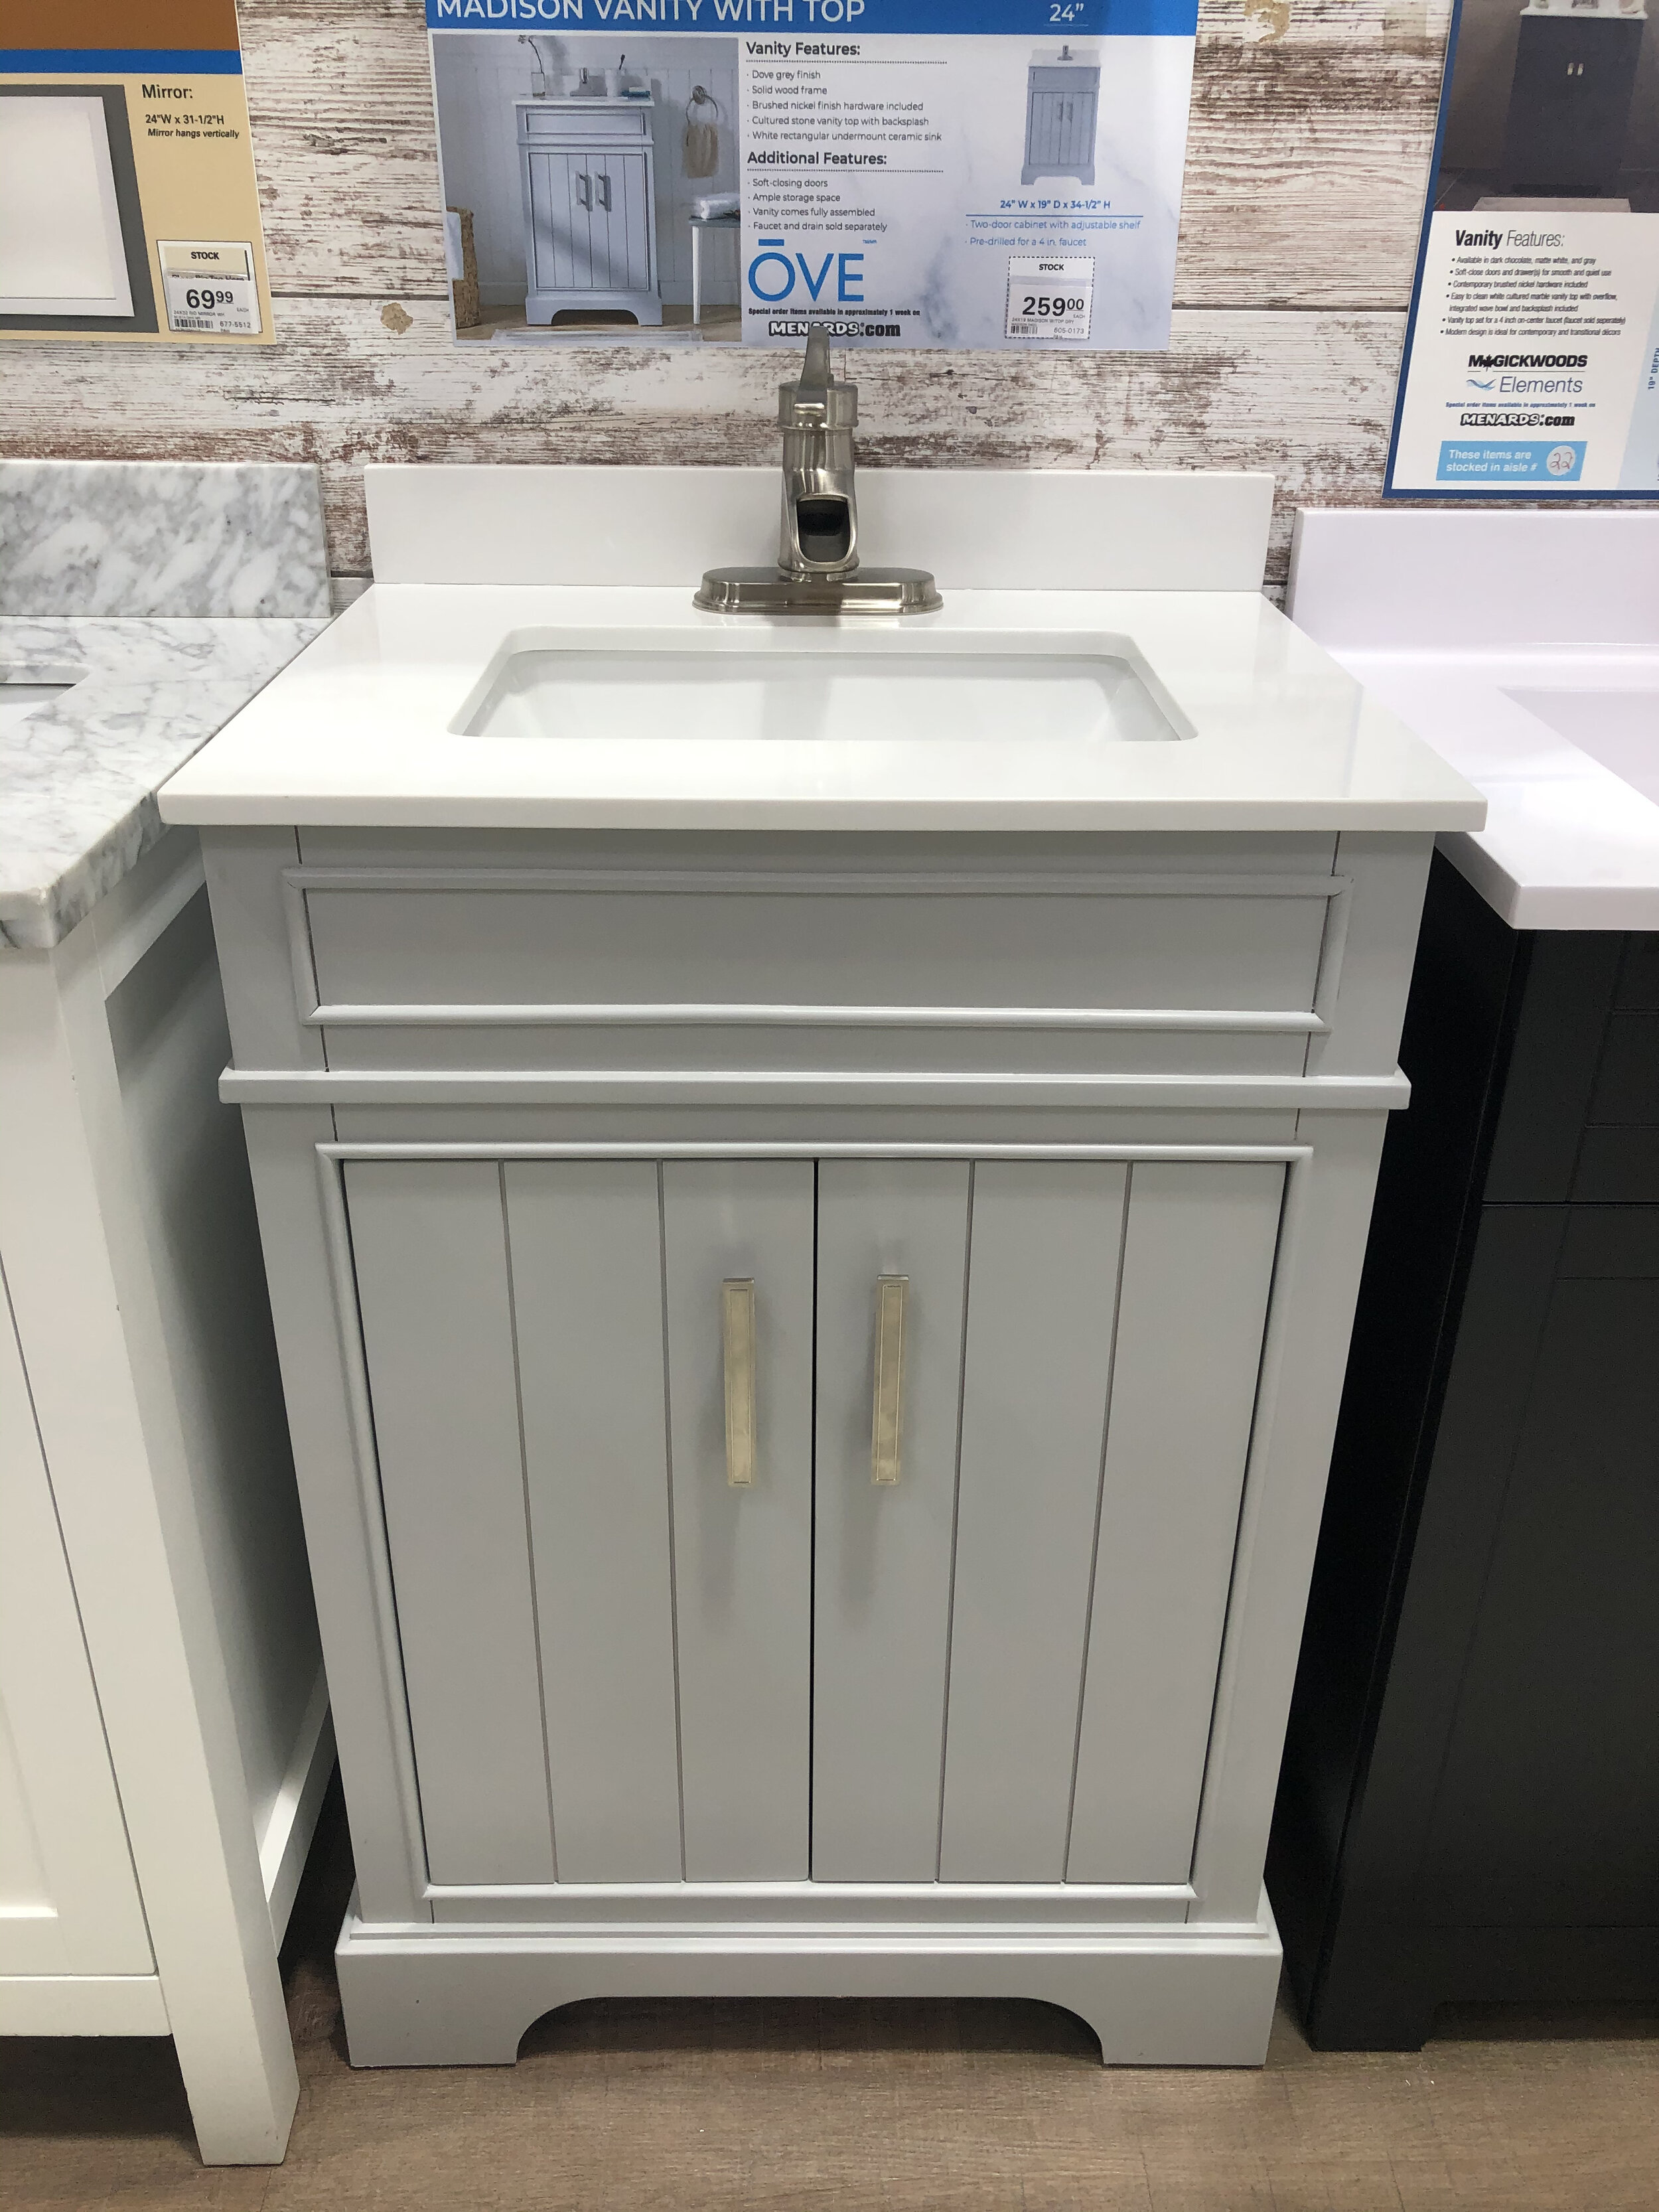 Madison Vanity cabinet with top